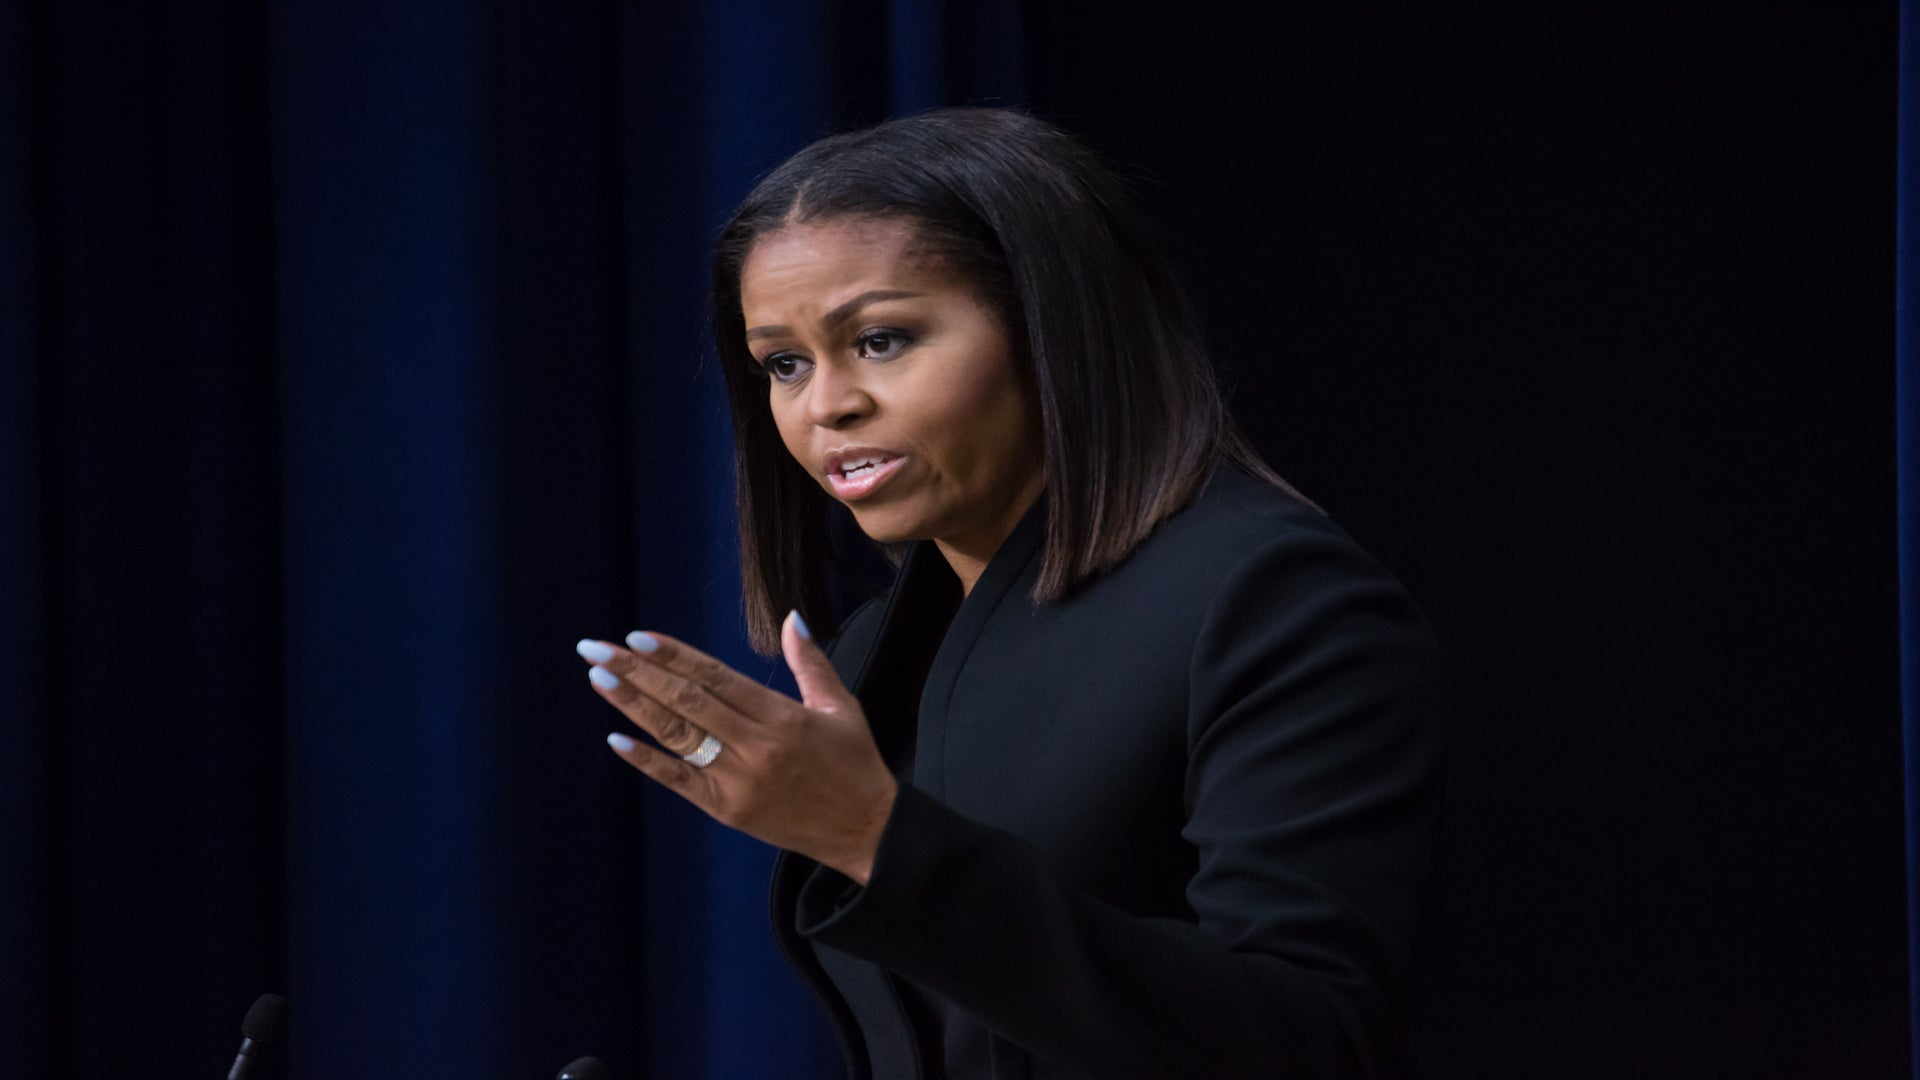 Michelle Obama On Sexual Misconduct Allegations: 'There Is An Ugliness There'